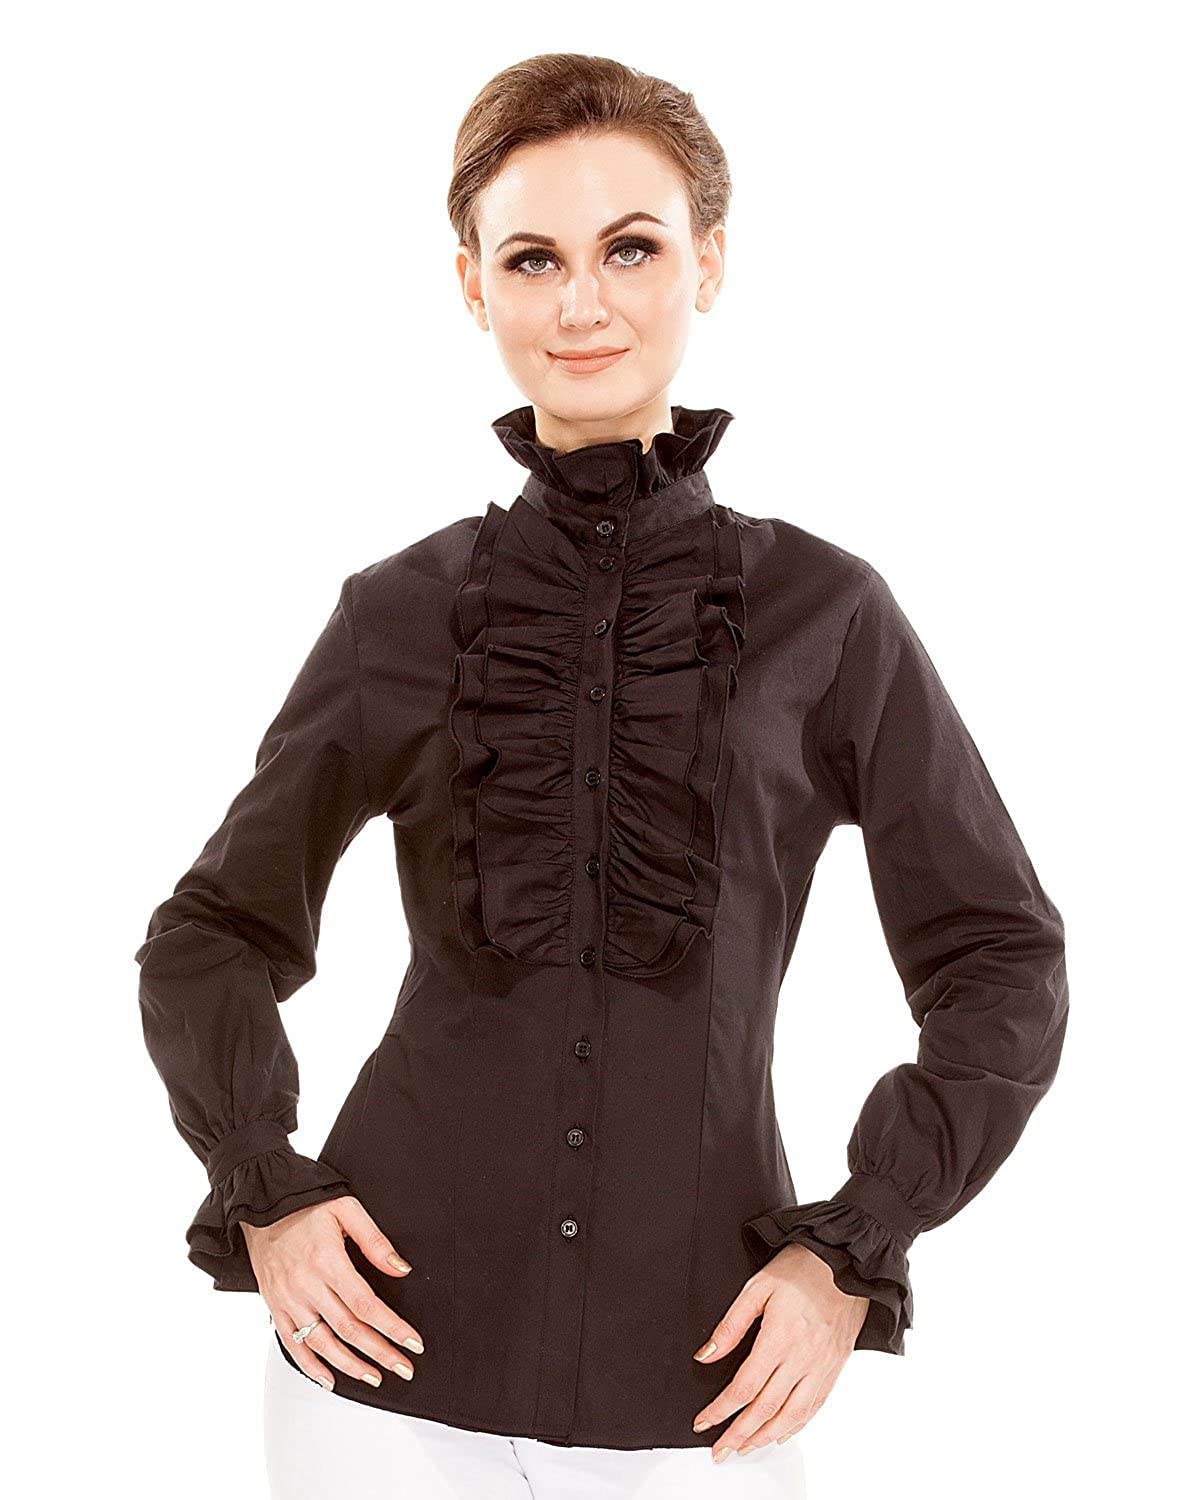 Edwardian Blouses |  Lace Blouses & Sweaters ThePirateDressing Steampunk Gothic Victorian Cosplay Costume Womens Stand-up Collar 100% Cotton Blouse Shirt $41.95 AT vintagedancer.com